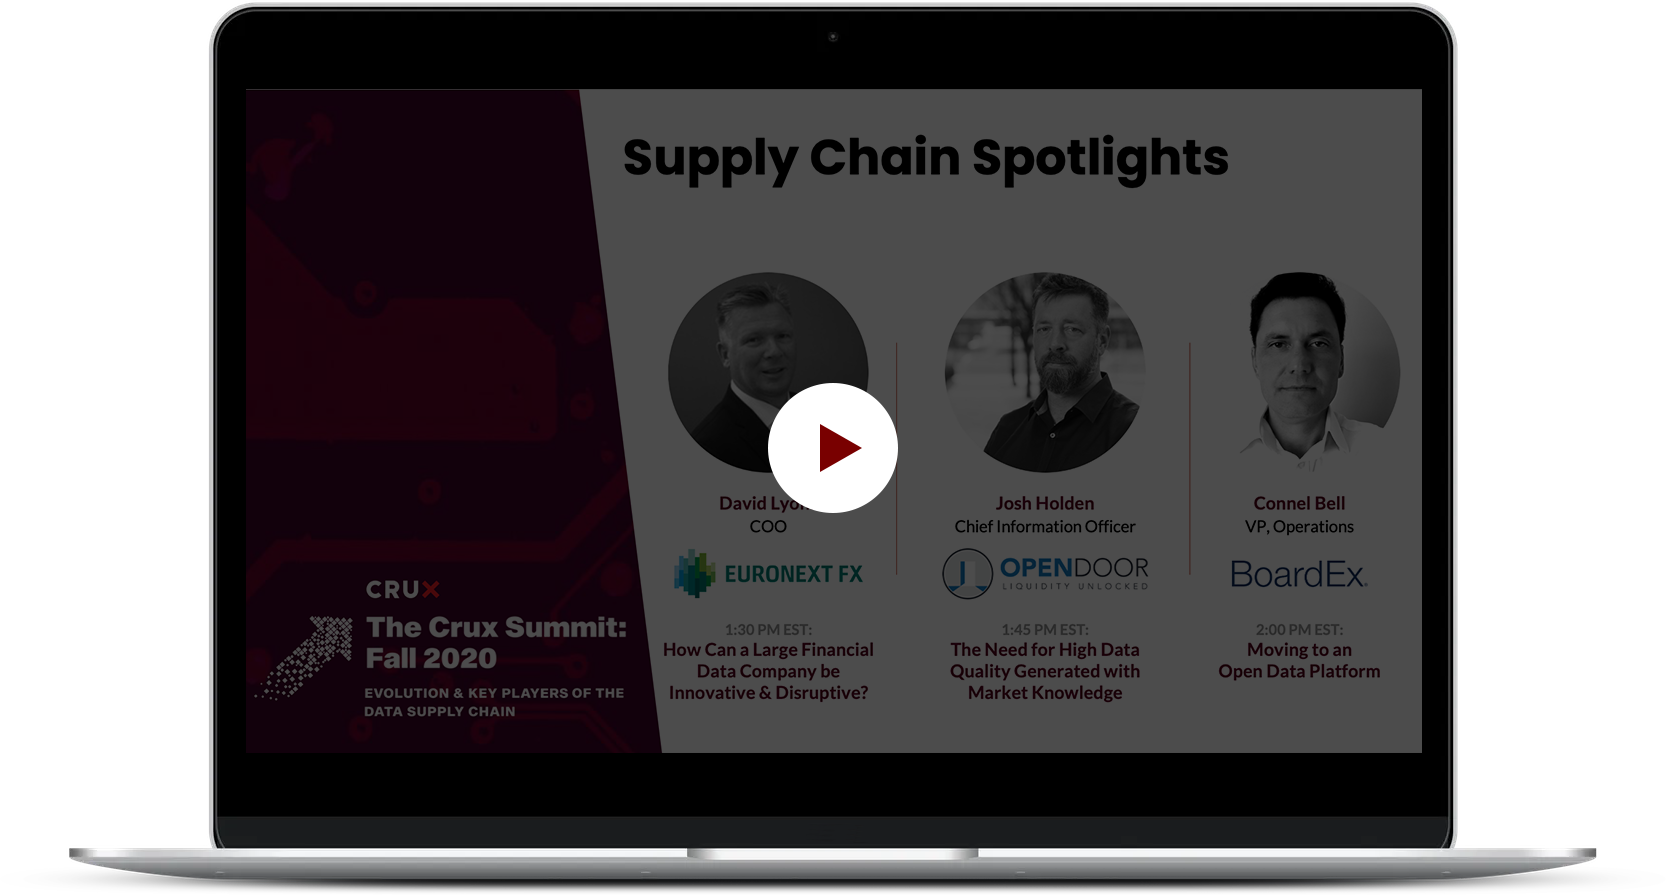 Crux_TCS_SupplyChainSpotlights_06